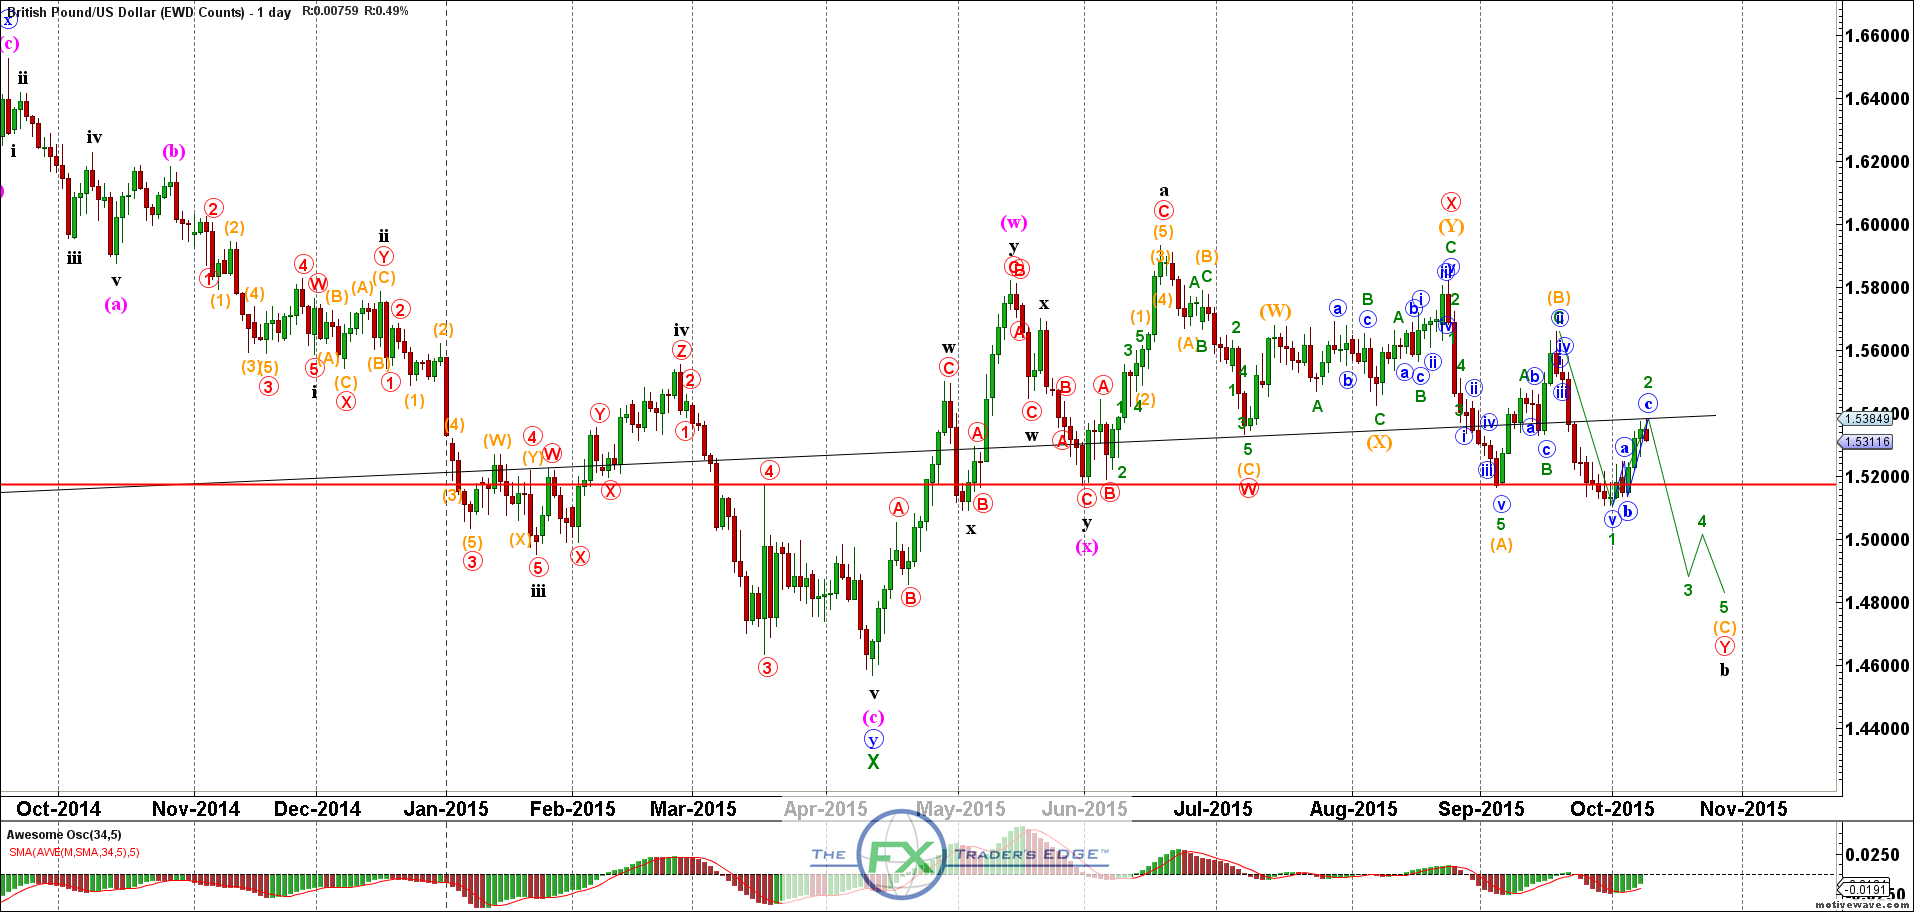 GBPUSD - EWD Counts - Oct-09 0937 AM (1 day)